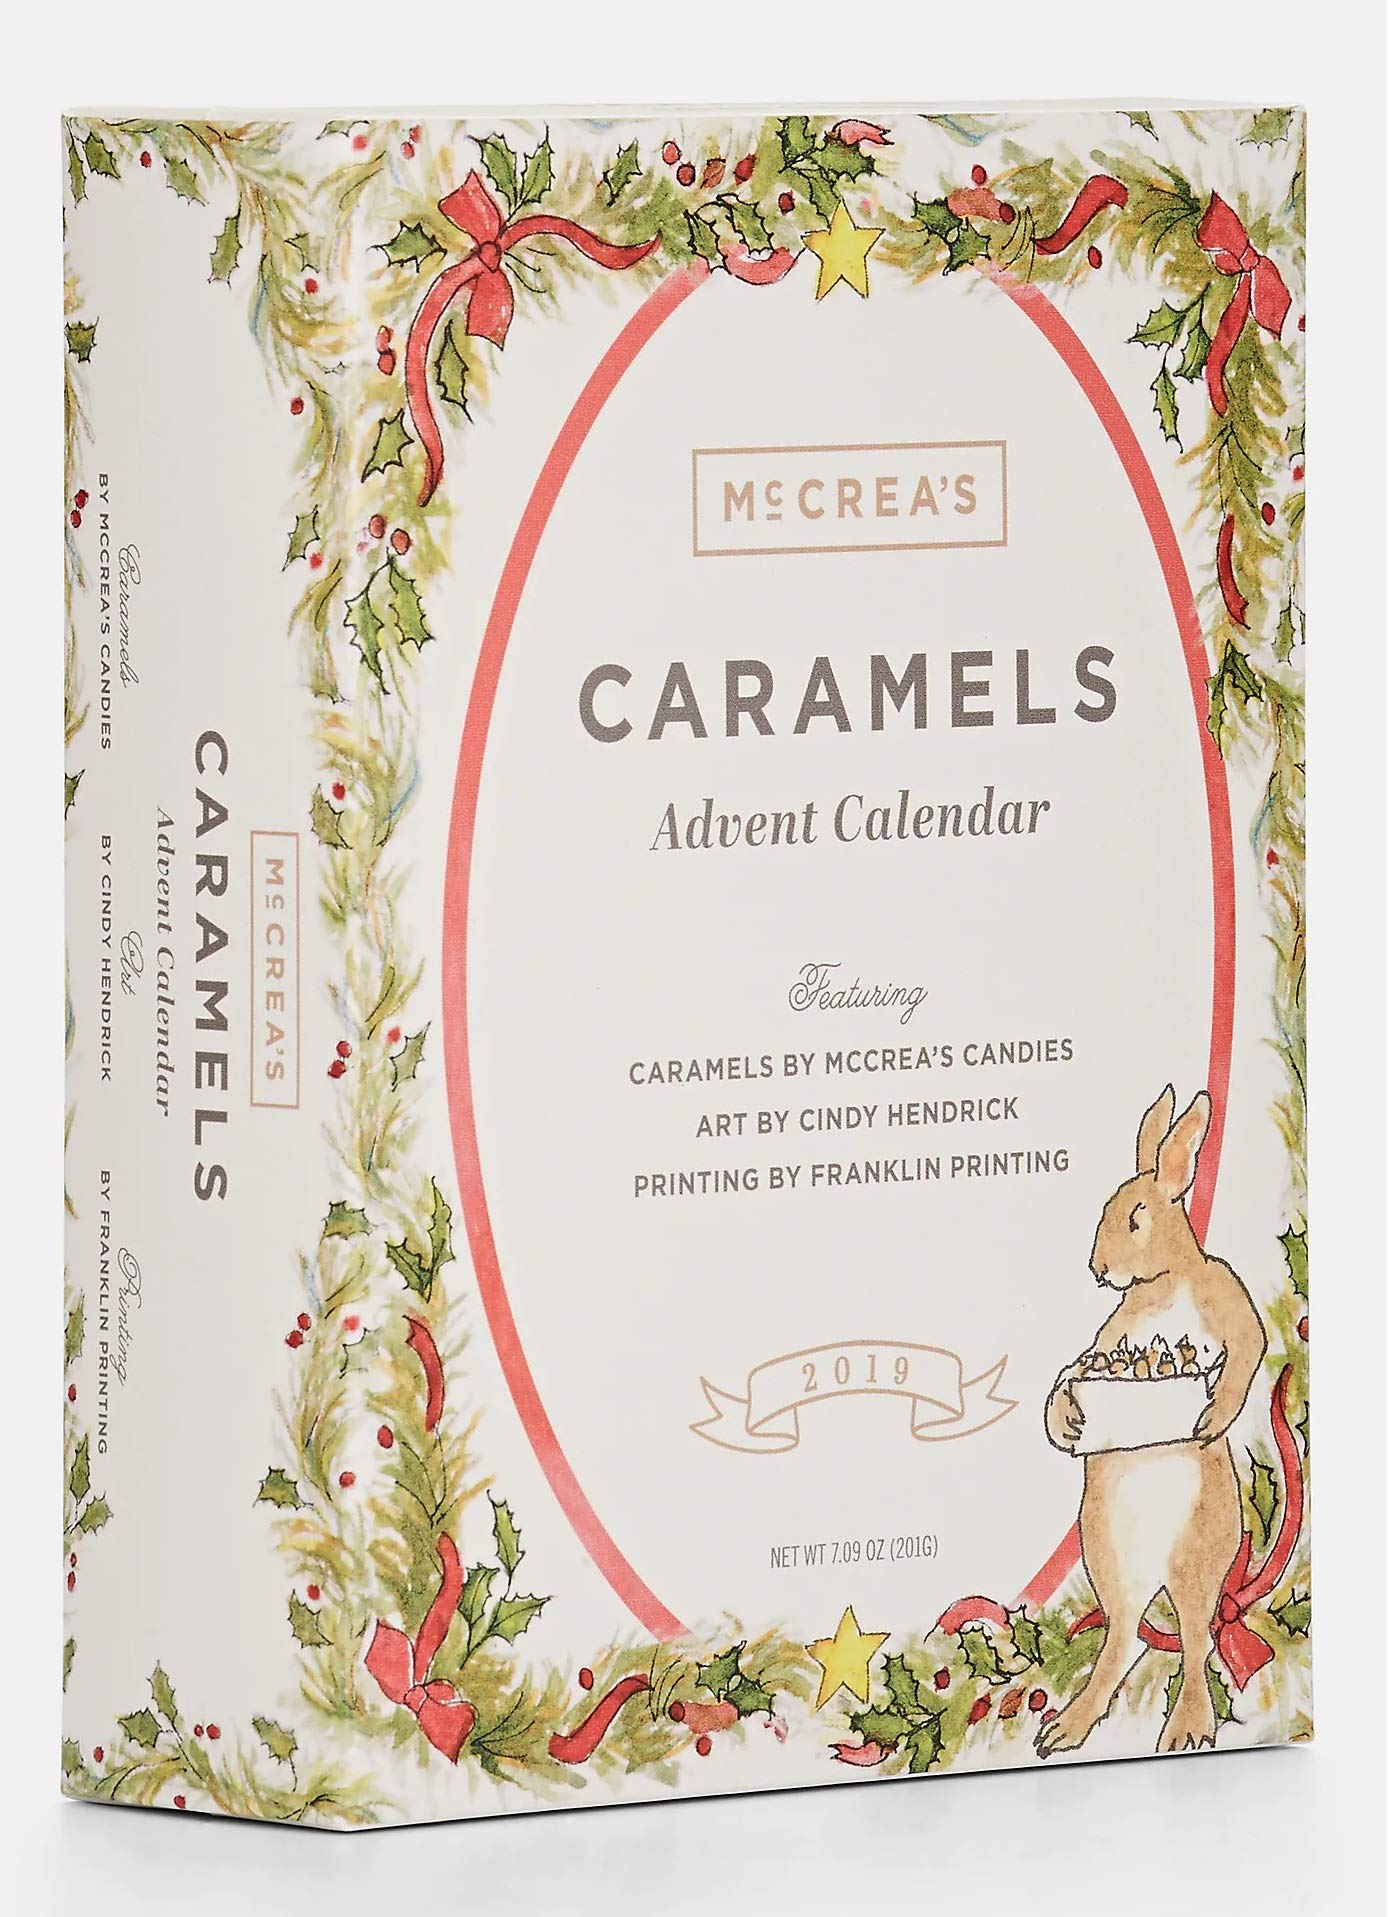 McCrea's Candies 2019 Caramel Advent Calendar featuring Art by Cindy Hendrick by McCrea's Candies